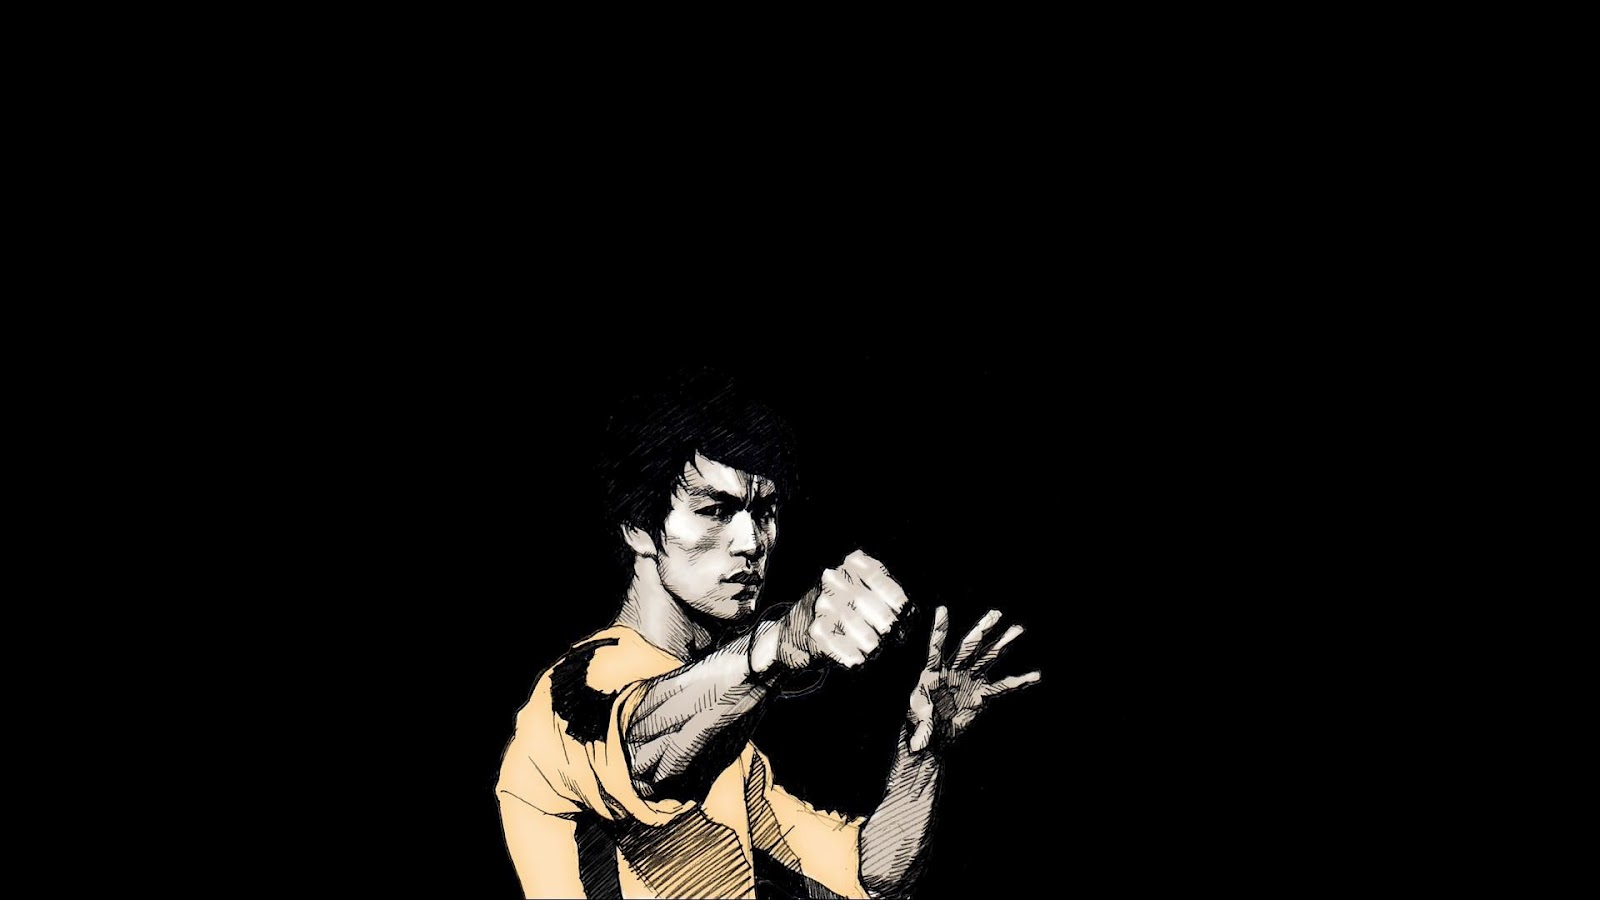 Bruce Lee Jeet Kune do Wallpaper Bruce Lee Wallpaper Quot